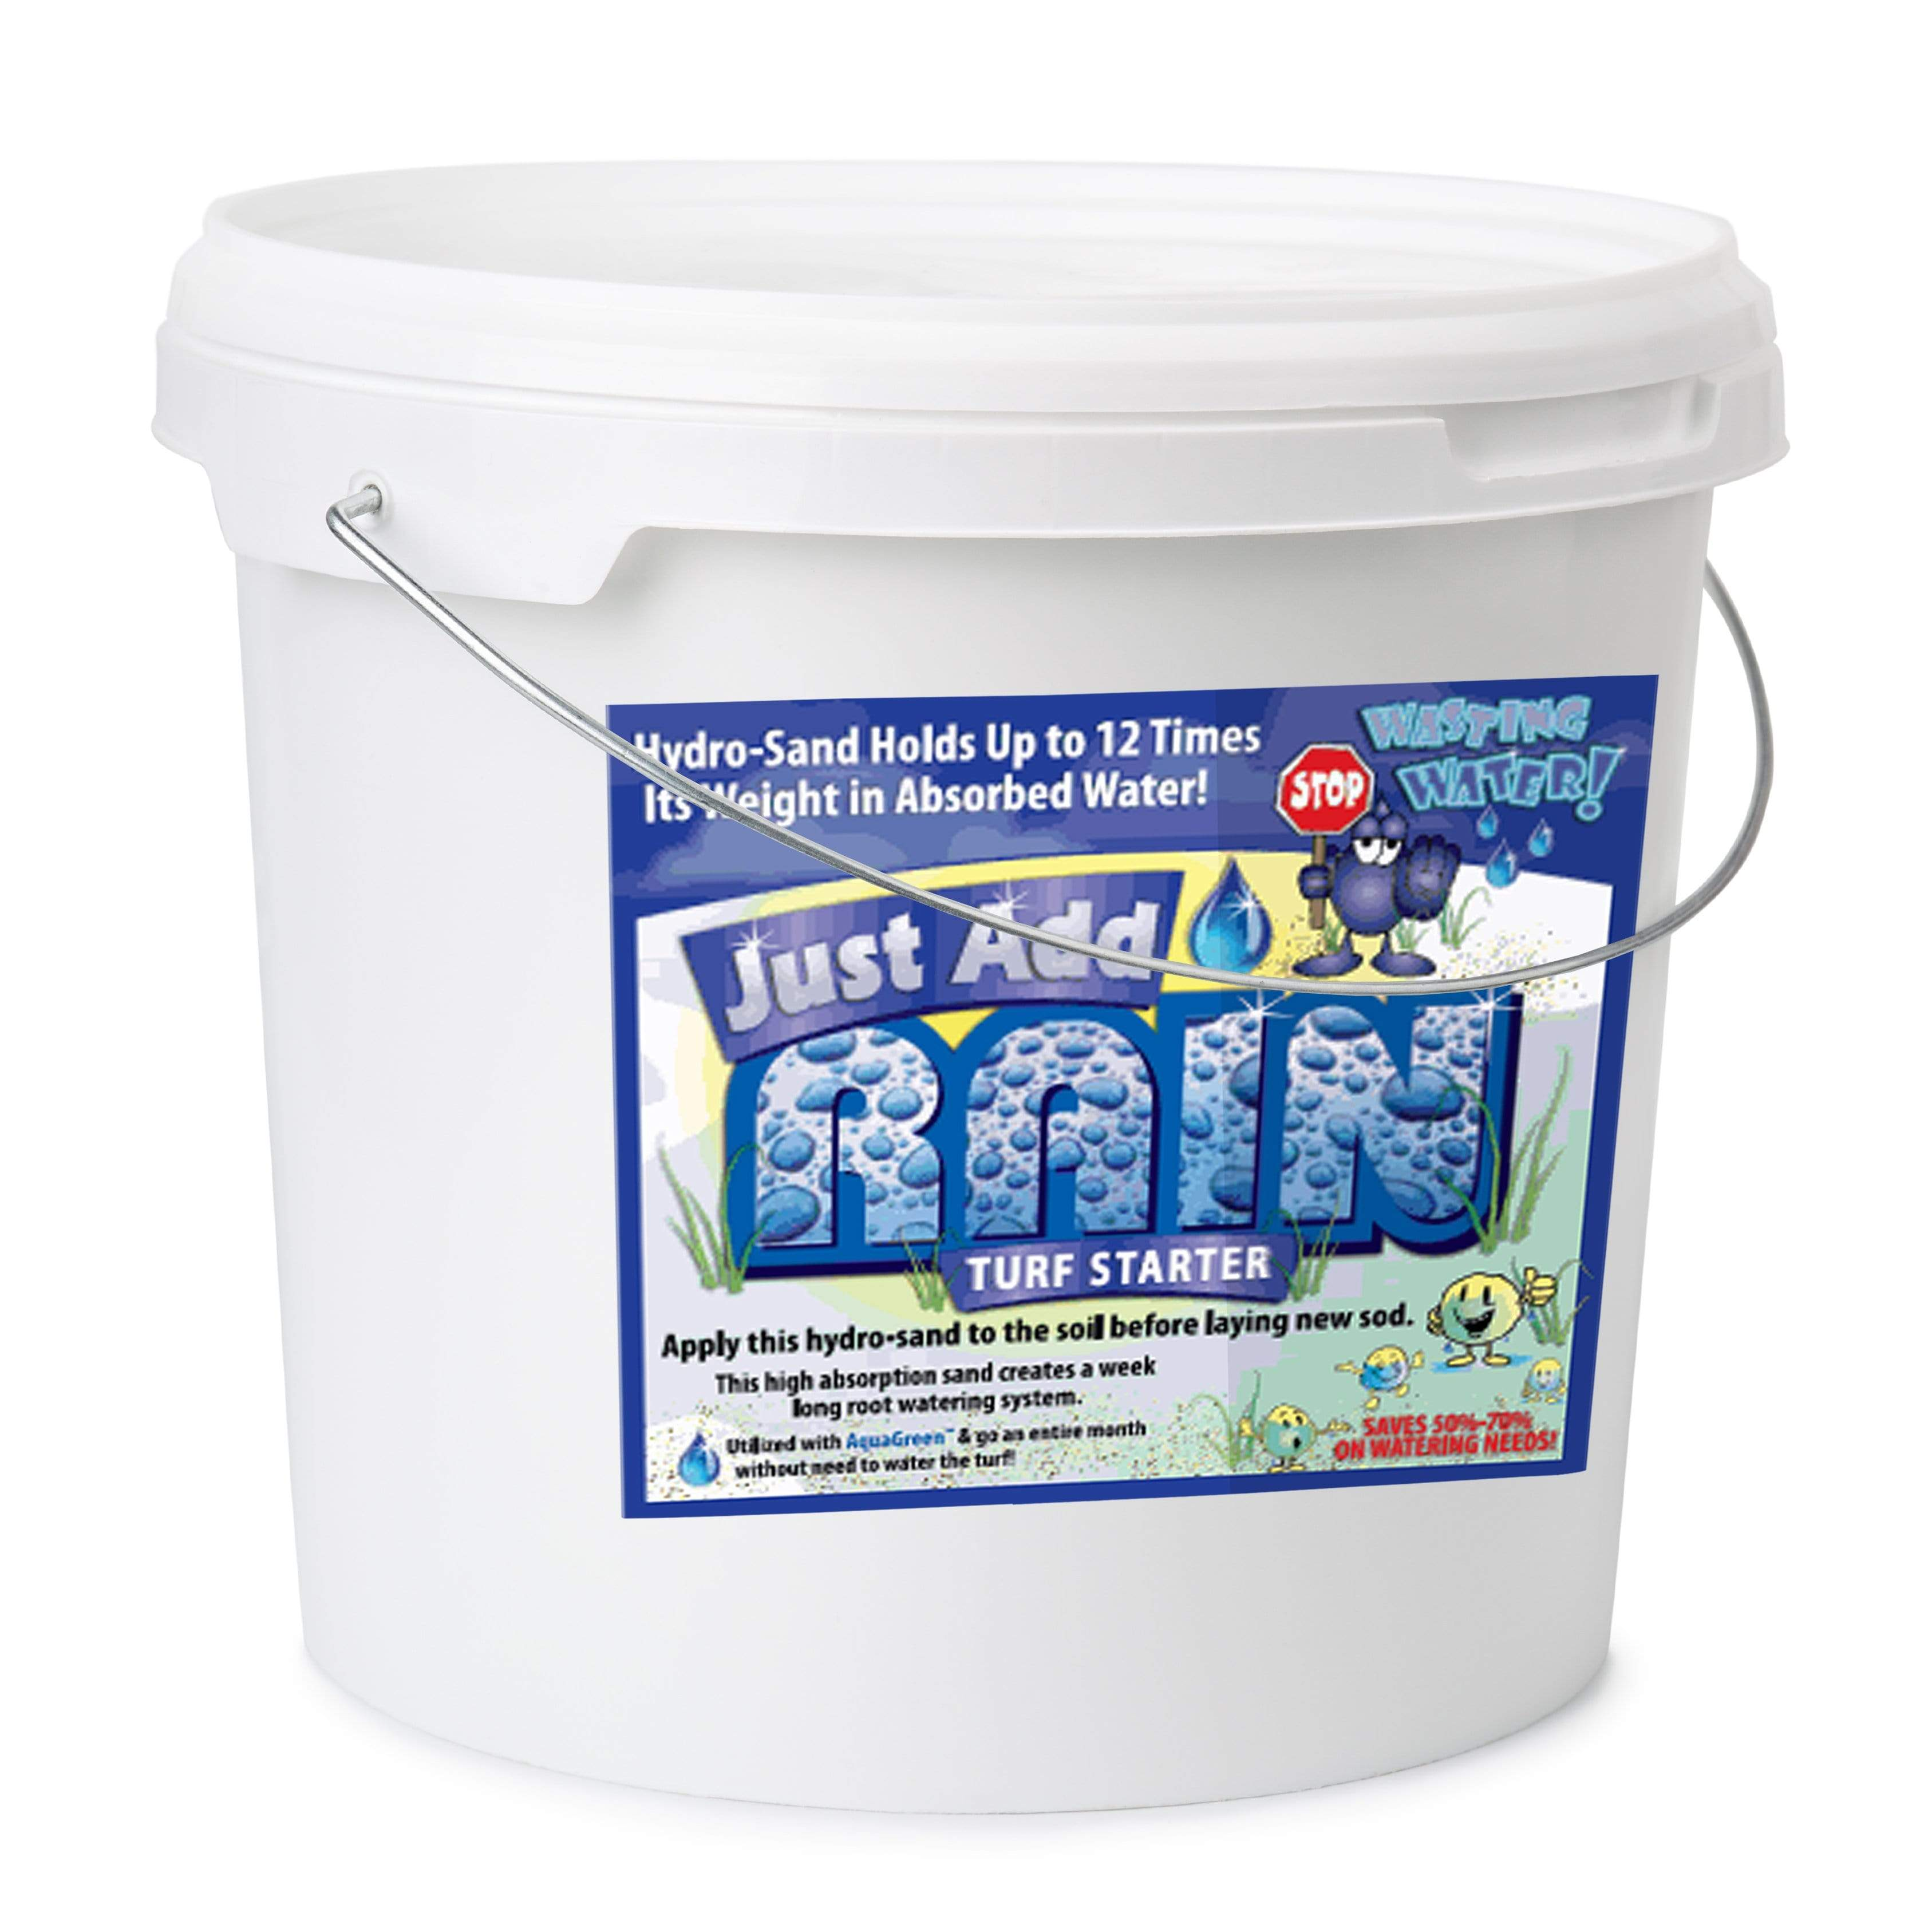 Just Add Rain (1 gallon) - Champion Landscape Supplies -